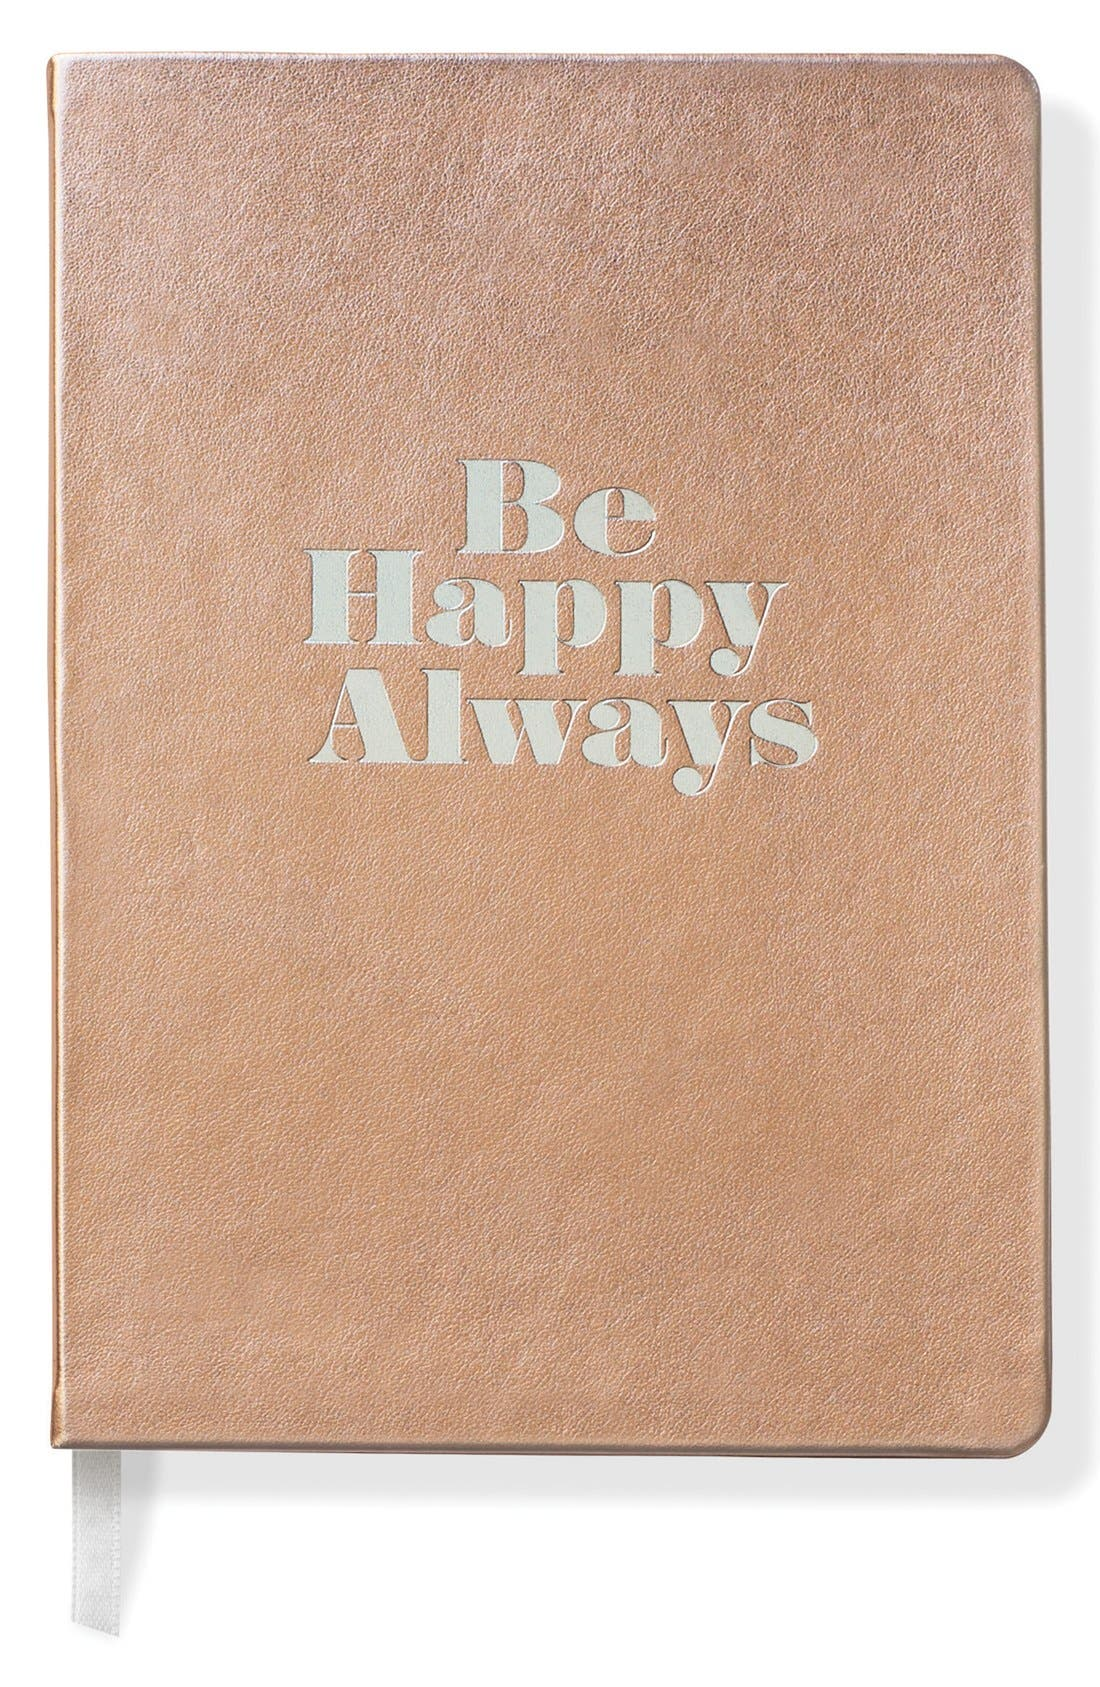 Alternate Image 1 Selected - Fringe Studio 'Be Happy Always' Softcover Journal